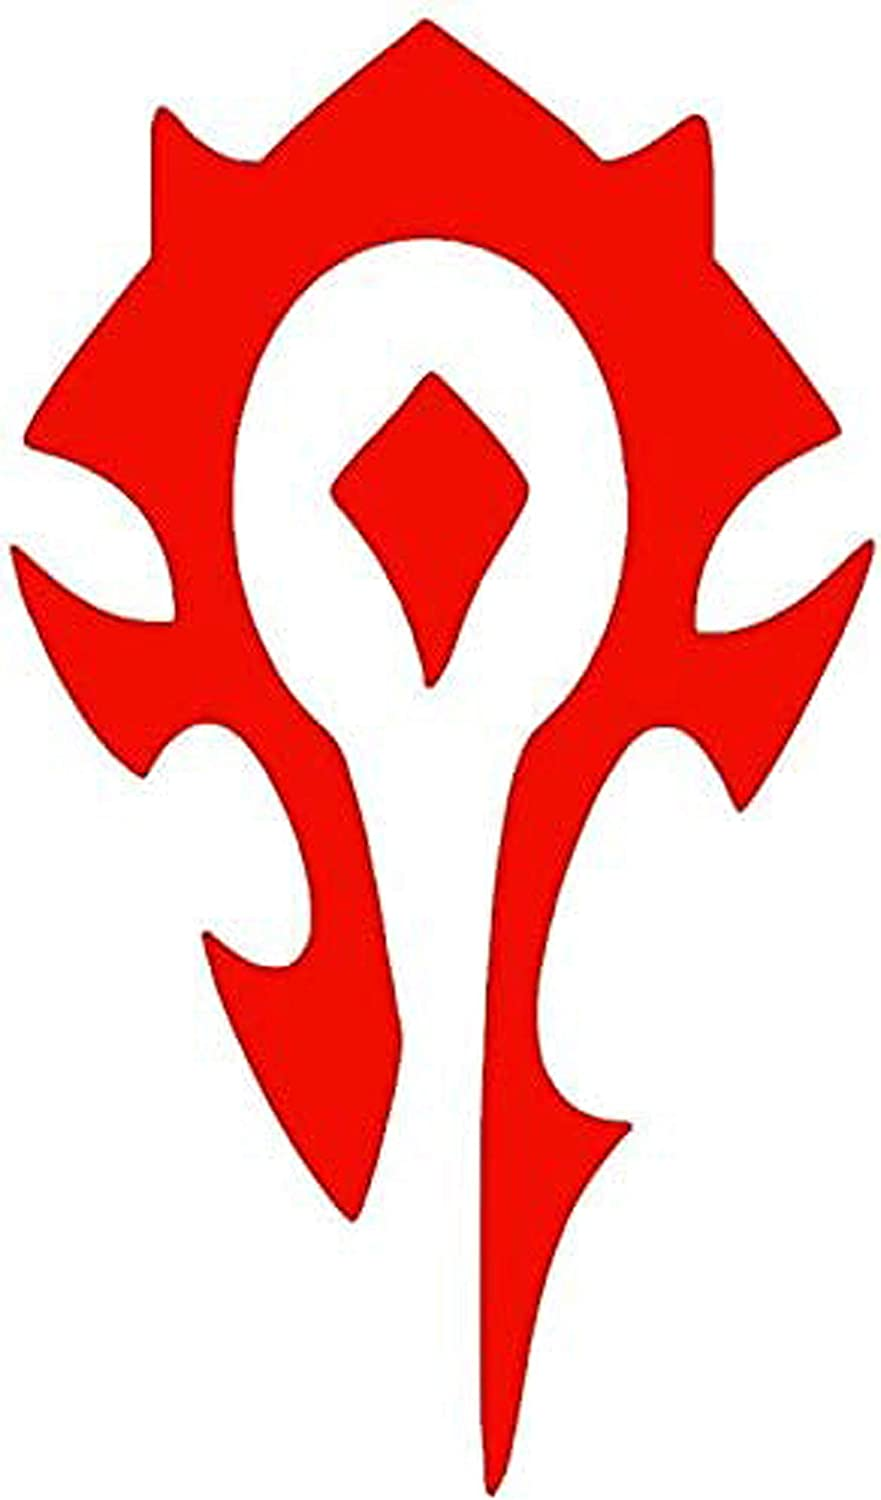 H-Tradings Warcraft Horde RED 5.5 Inches Approx Cars Walls Laptop Die-Cut Vinyl Stickers Decals Vans SUV Trucks Windows Bumper